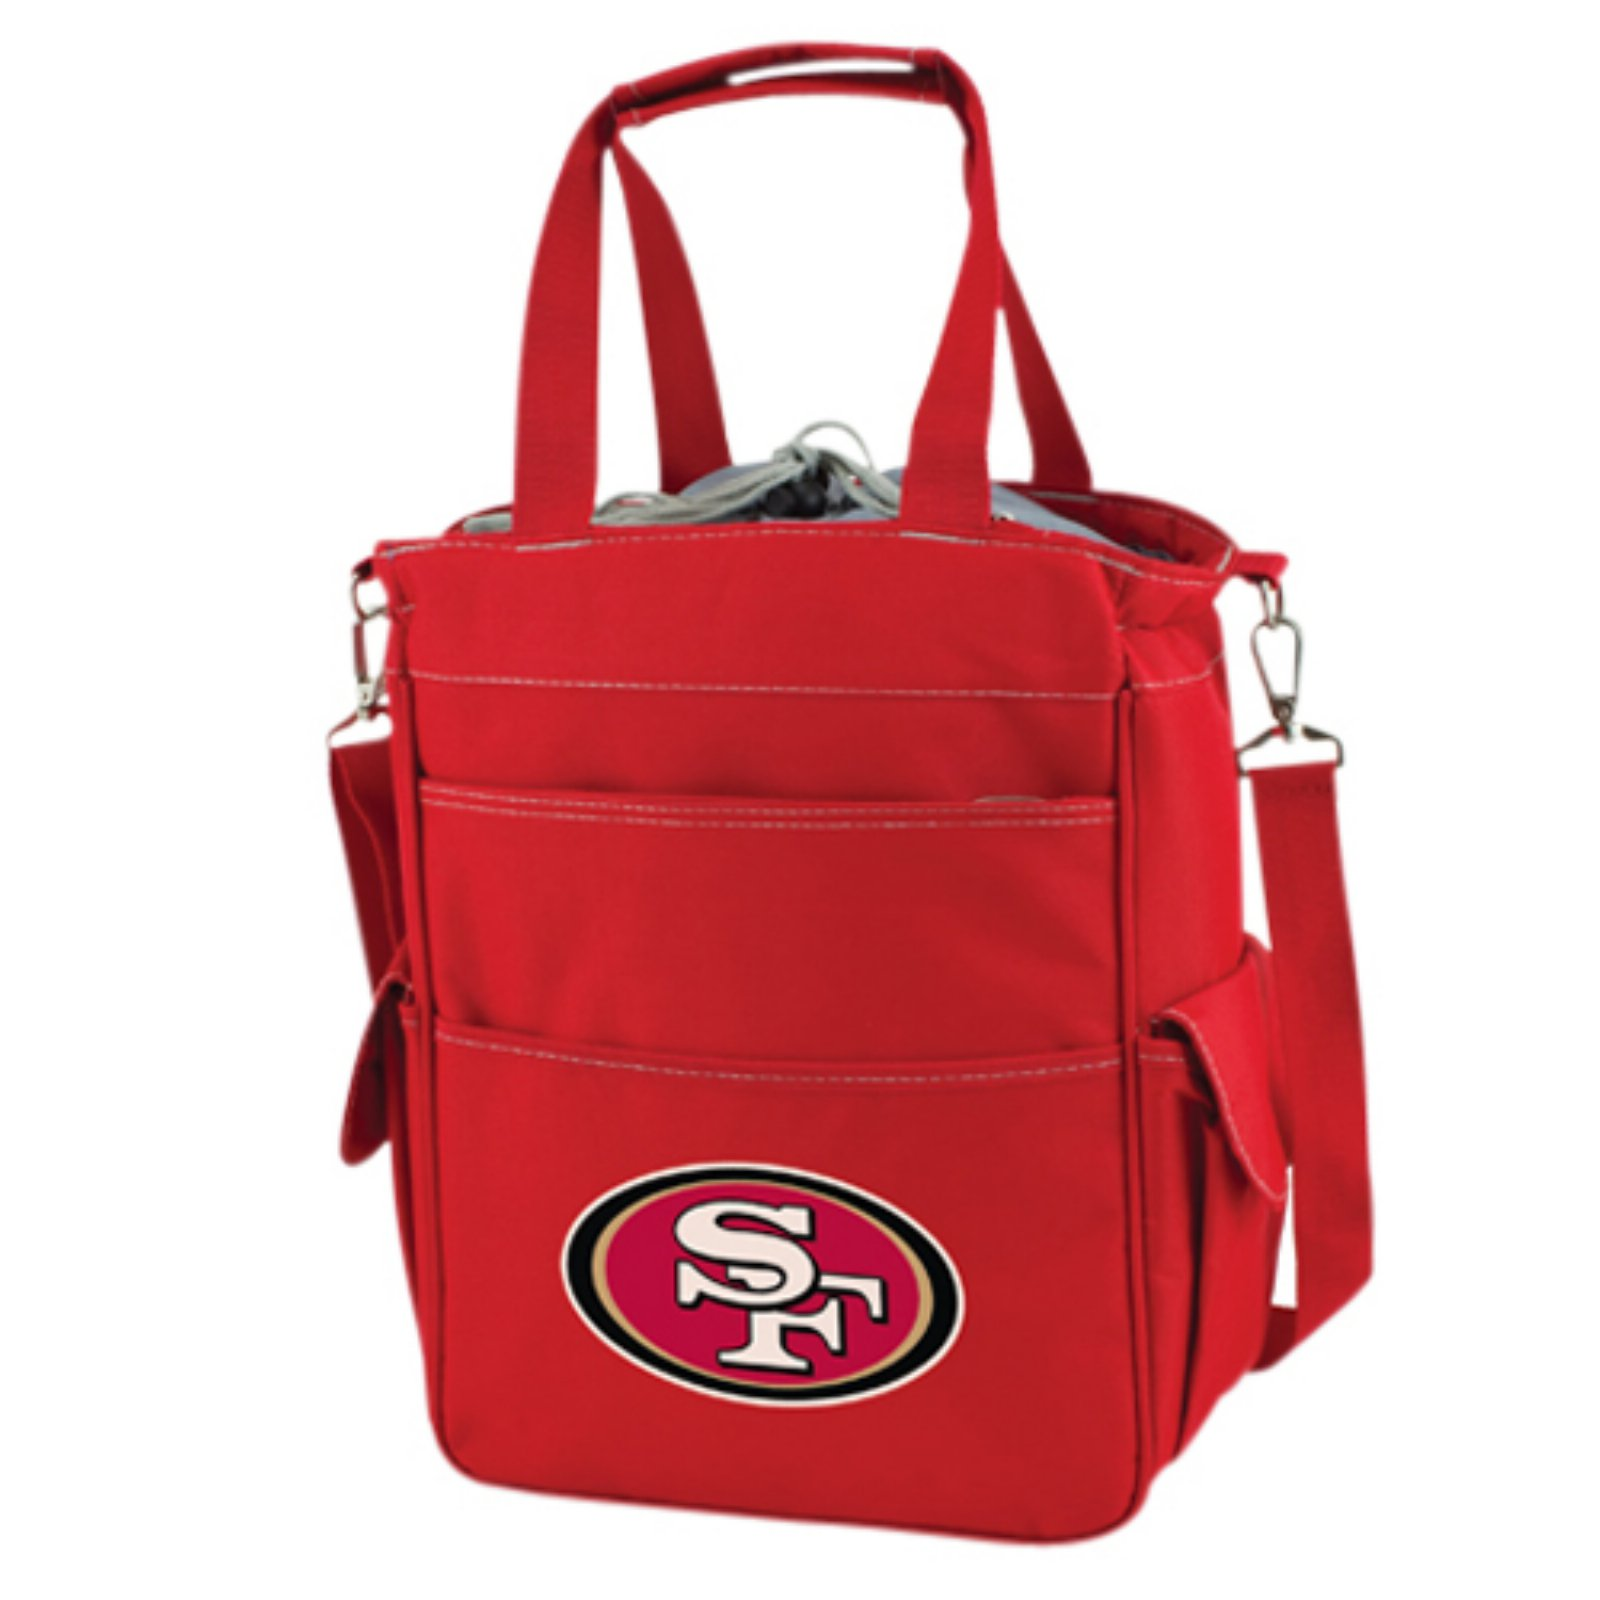 Picnic Time Activo, Red San Francisco 49ers Digital Print